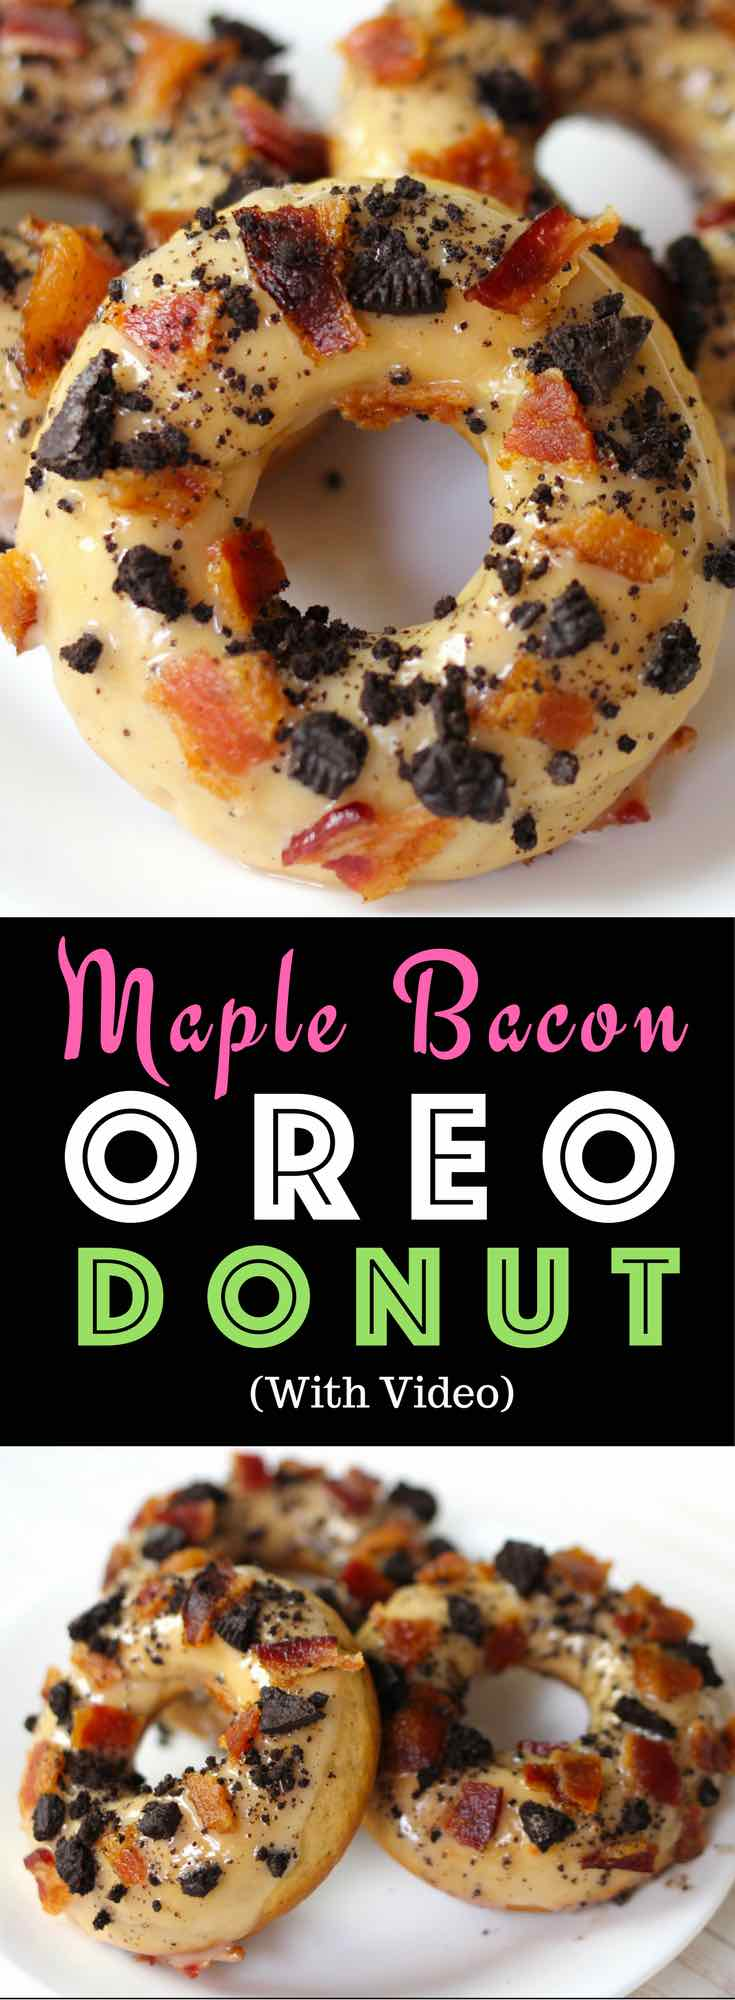 Easy Maple Bacon Oreo Donuts – One of the best flavor combinations ever. A quick and simple recipe that's so easy to make. All you need is only a few simple ingredients: Oreos, flour, brown sugar, baking powder, baking soda, nutmeg, yogurt, egg, butter, milk and vanilla extract! Quick and easy recipe, no bake dessert, snack. Video recipe. | Tipbuzz.com